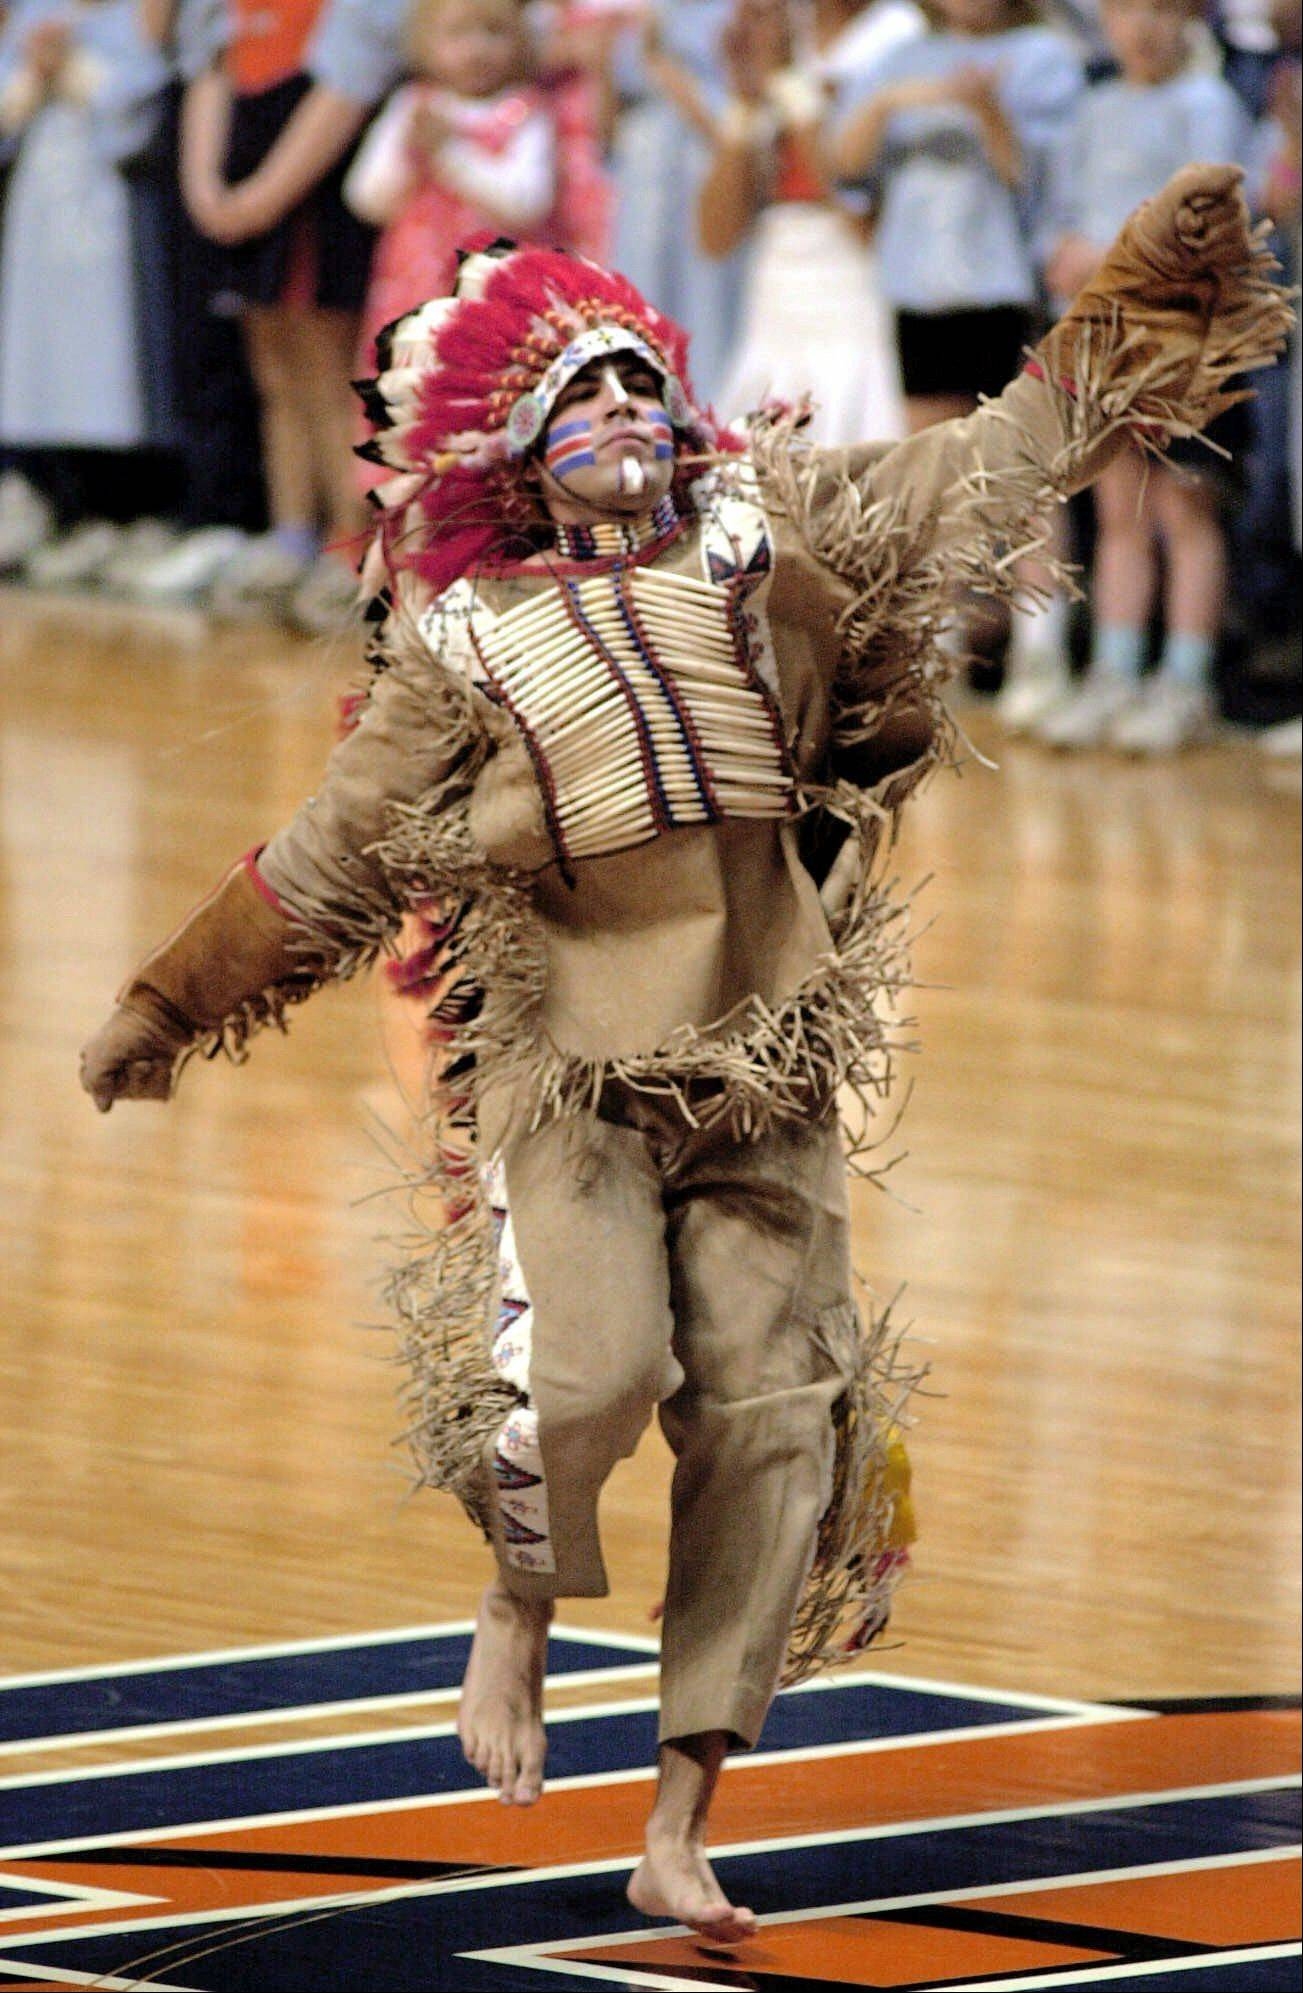 In this photo from 2000, the University of Illinois� mascot Chief Illiniwek dances for the crowd at a women�s basketball game, in Champaign. The university retired Chief Illiniwek as a mascot in 2007. But the school kept the name of the Fighting Illini.